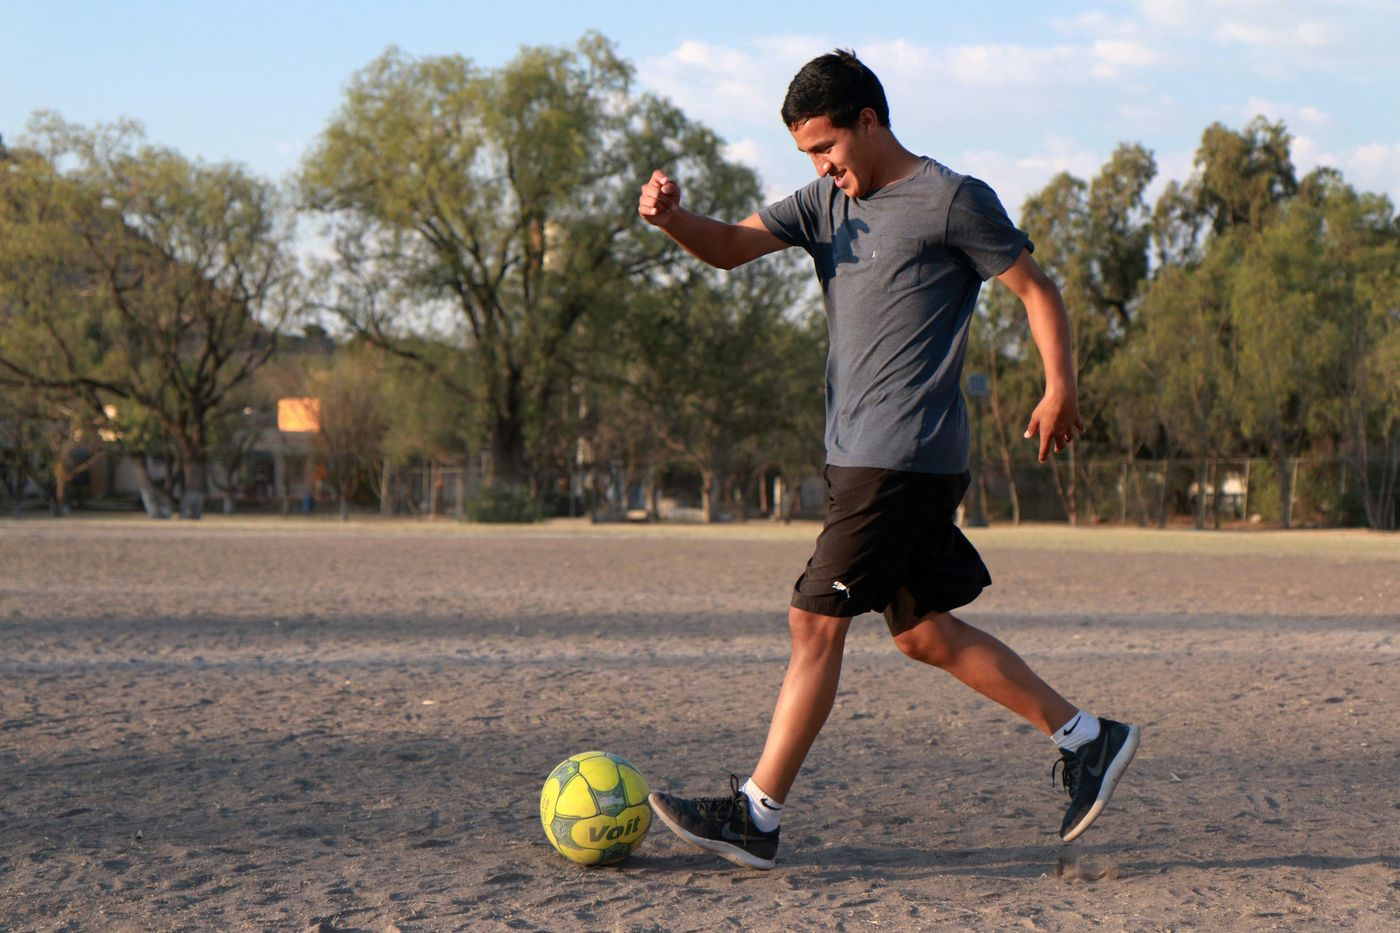 U.S. losing soccer prospects as California talent head back to Mexico in search of opportunity